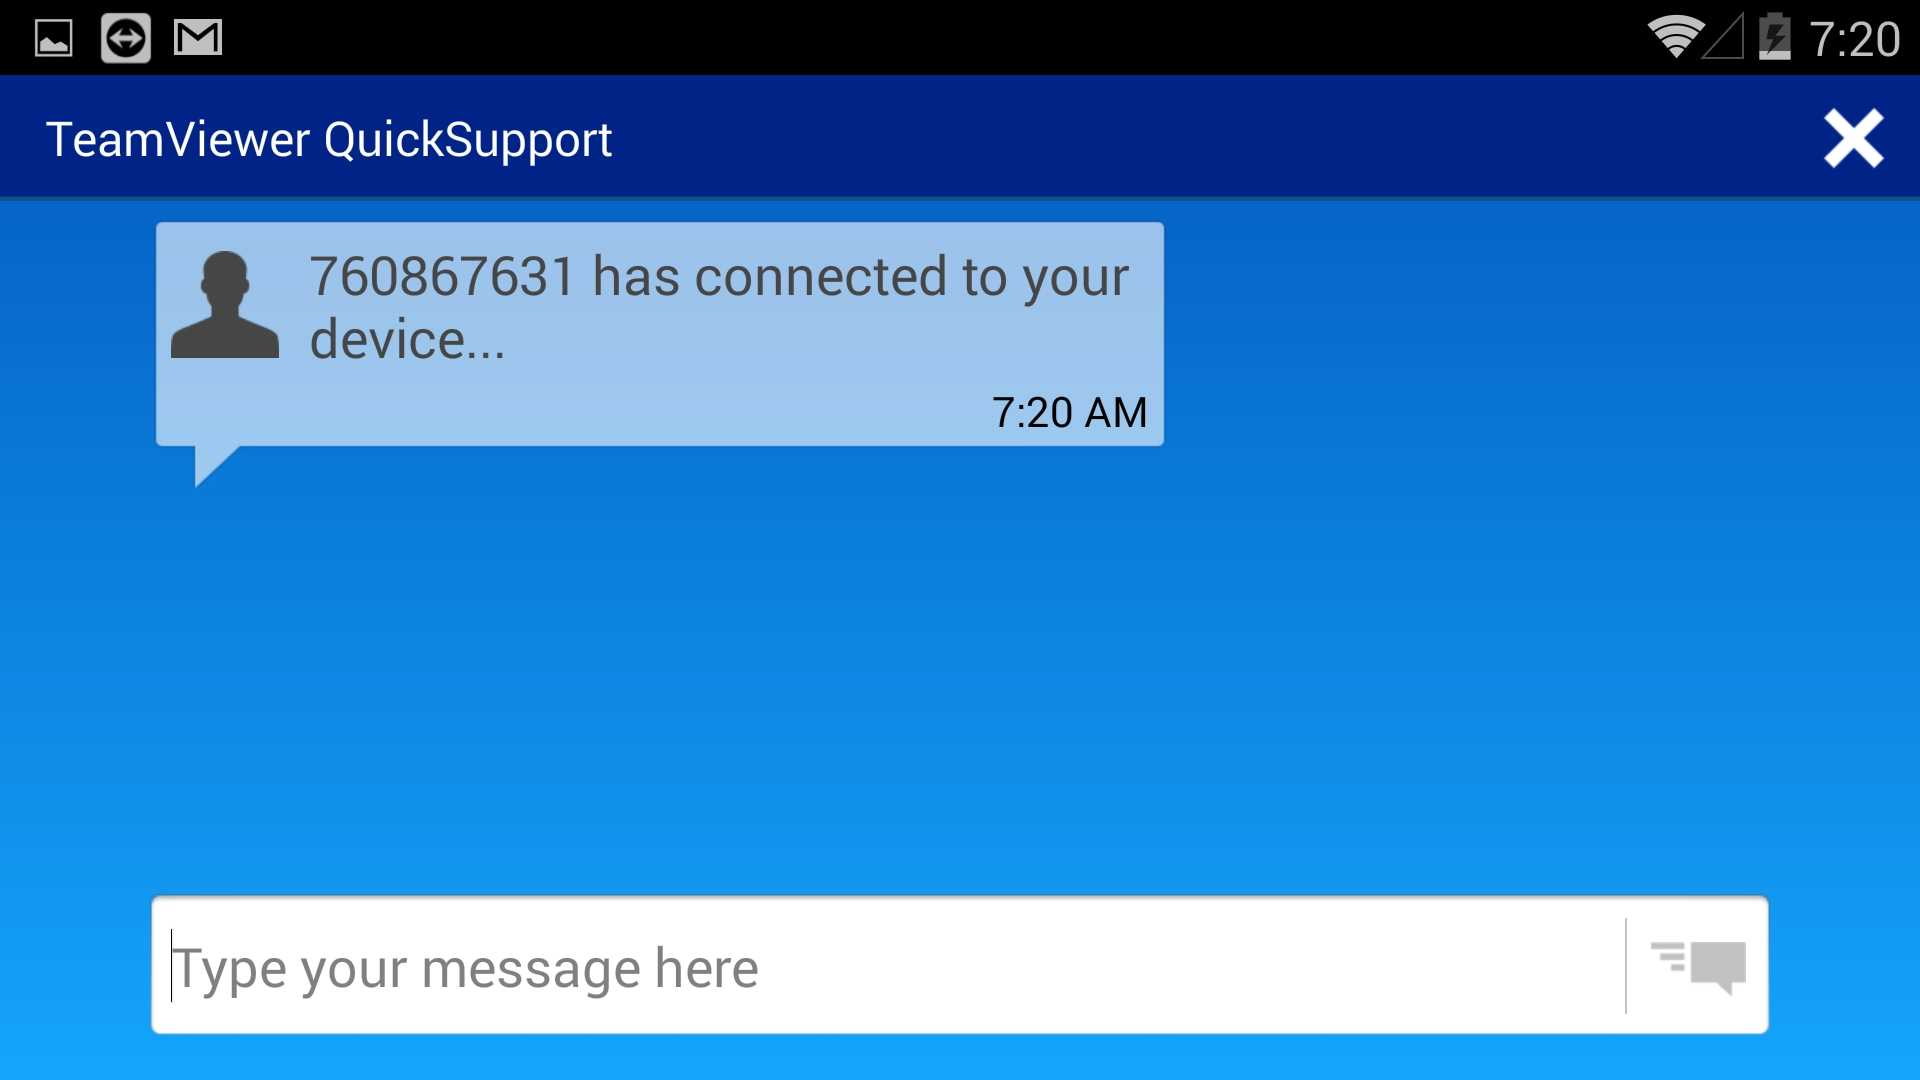 TeamViewer QuickSupport – Chat